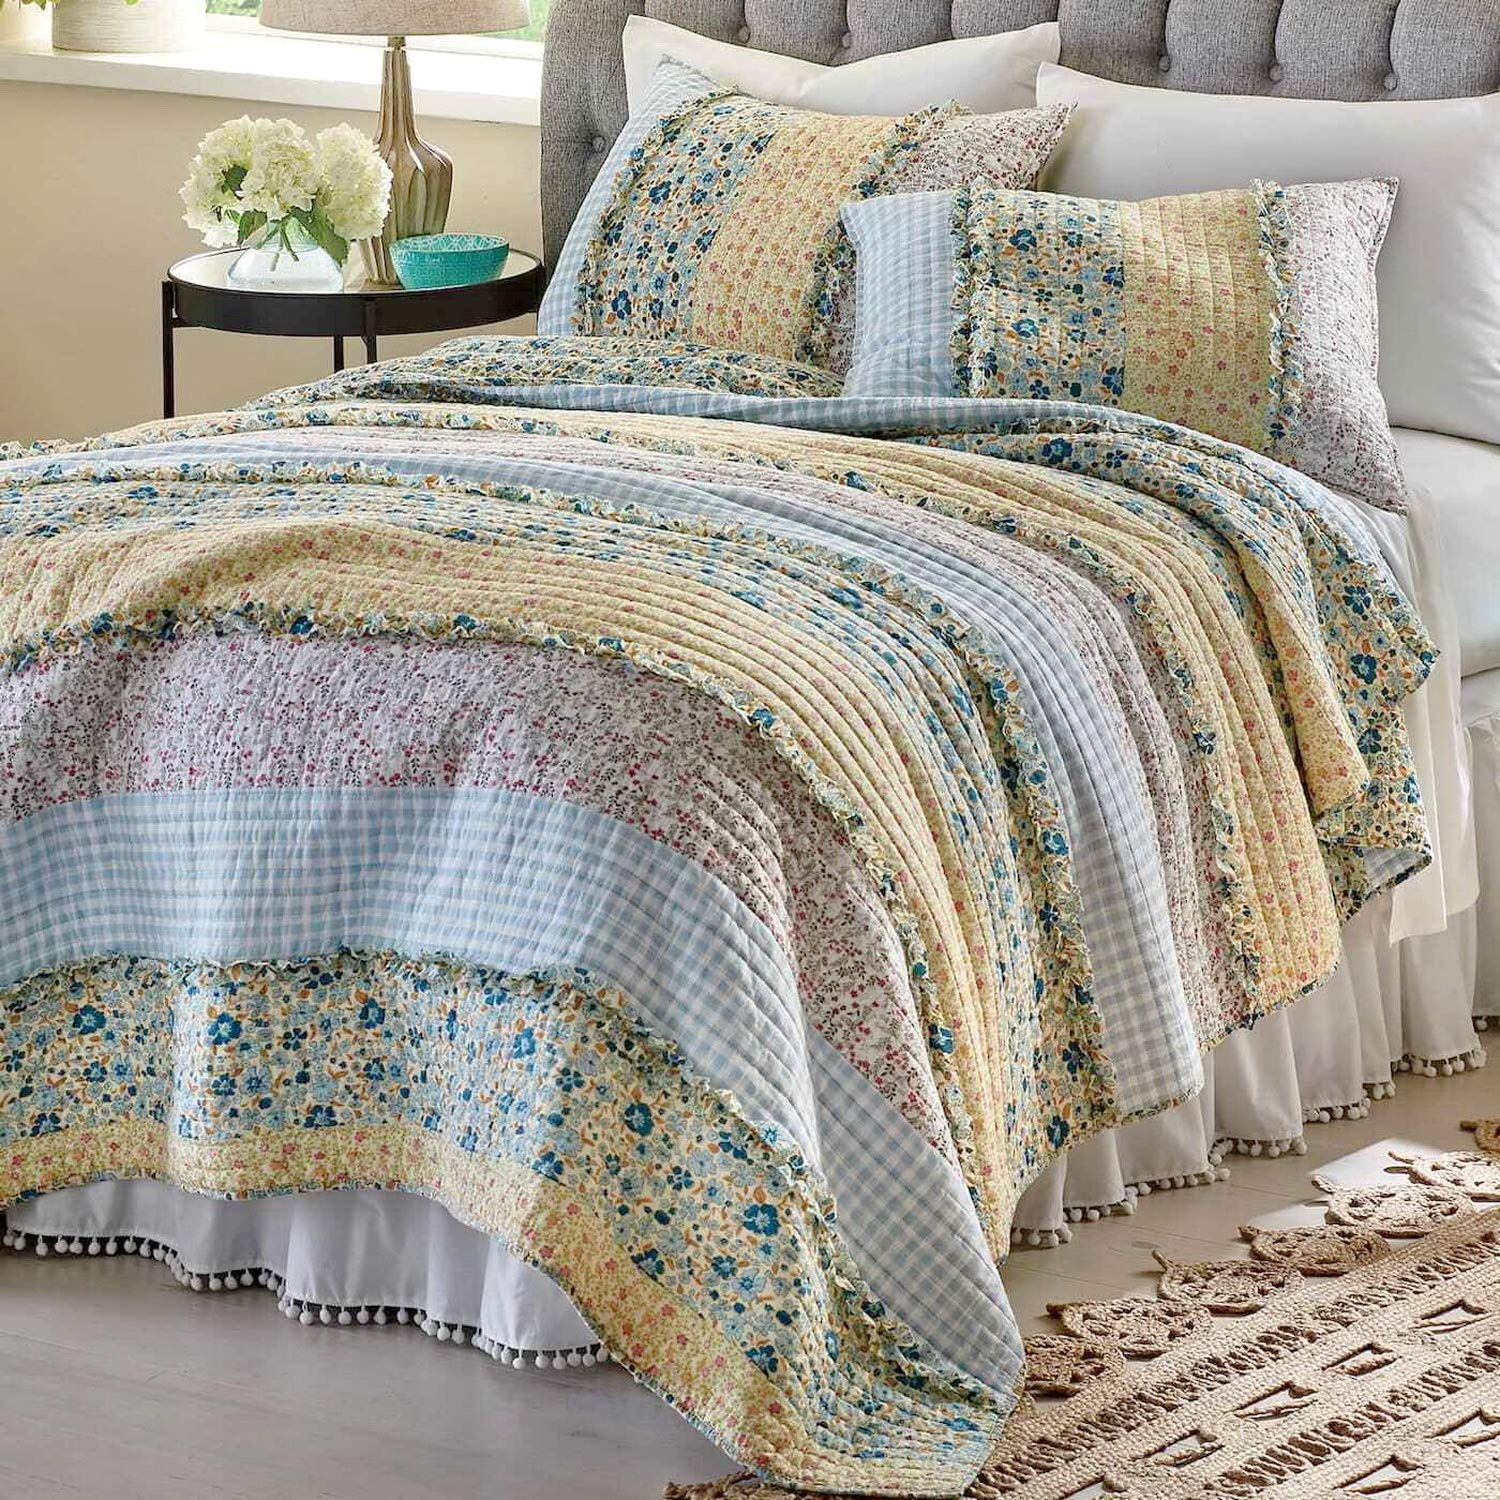 Gh Quilt Coverlet Set Bedspread Chic Country Cottage Blue Yellow Ruffles Floral Print Pattern 3 Piece Full Queen Size Lightweight Hypoallergenic